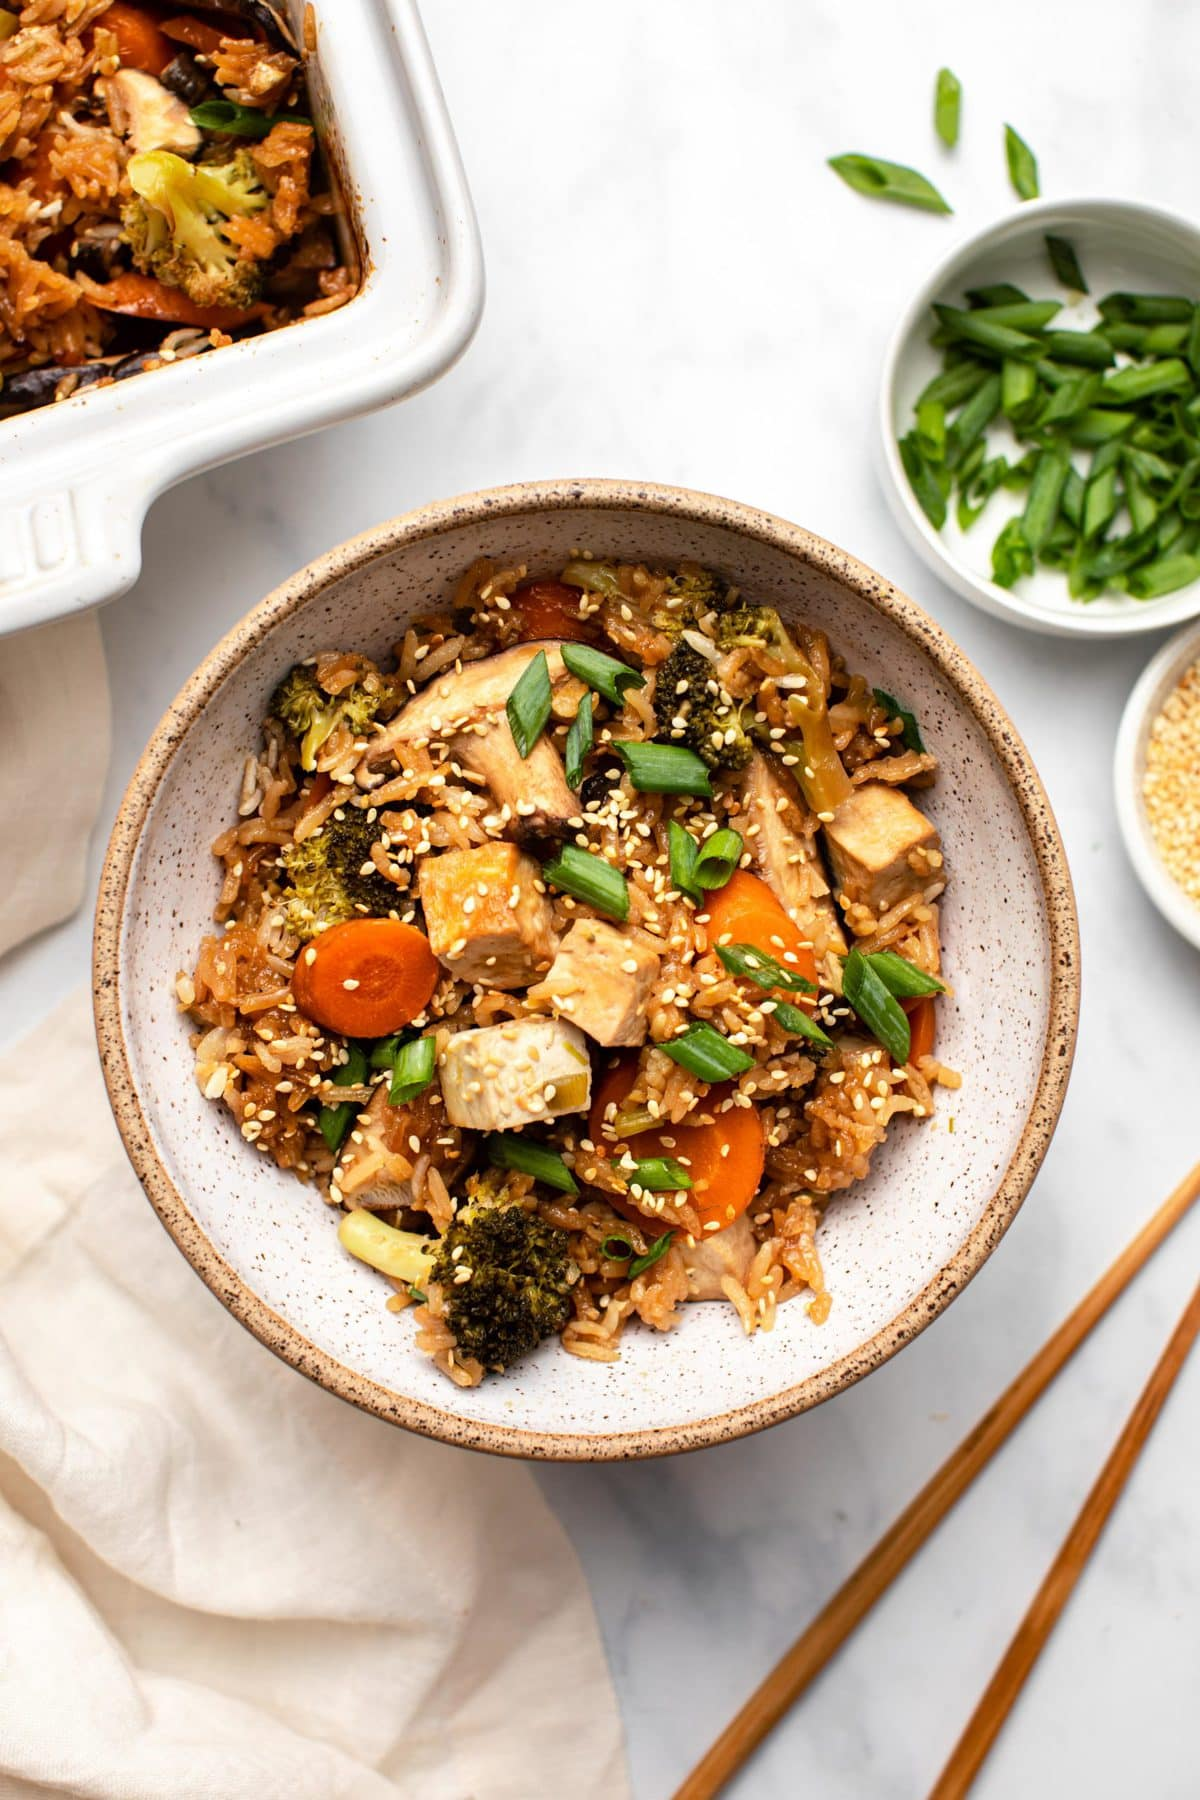 Teriyaki Tofu Casserole in white bowl topped with green onion and sesame seeds next to small bowls of green onion and sesame seeds